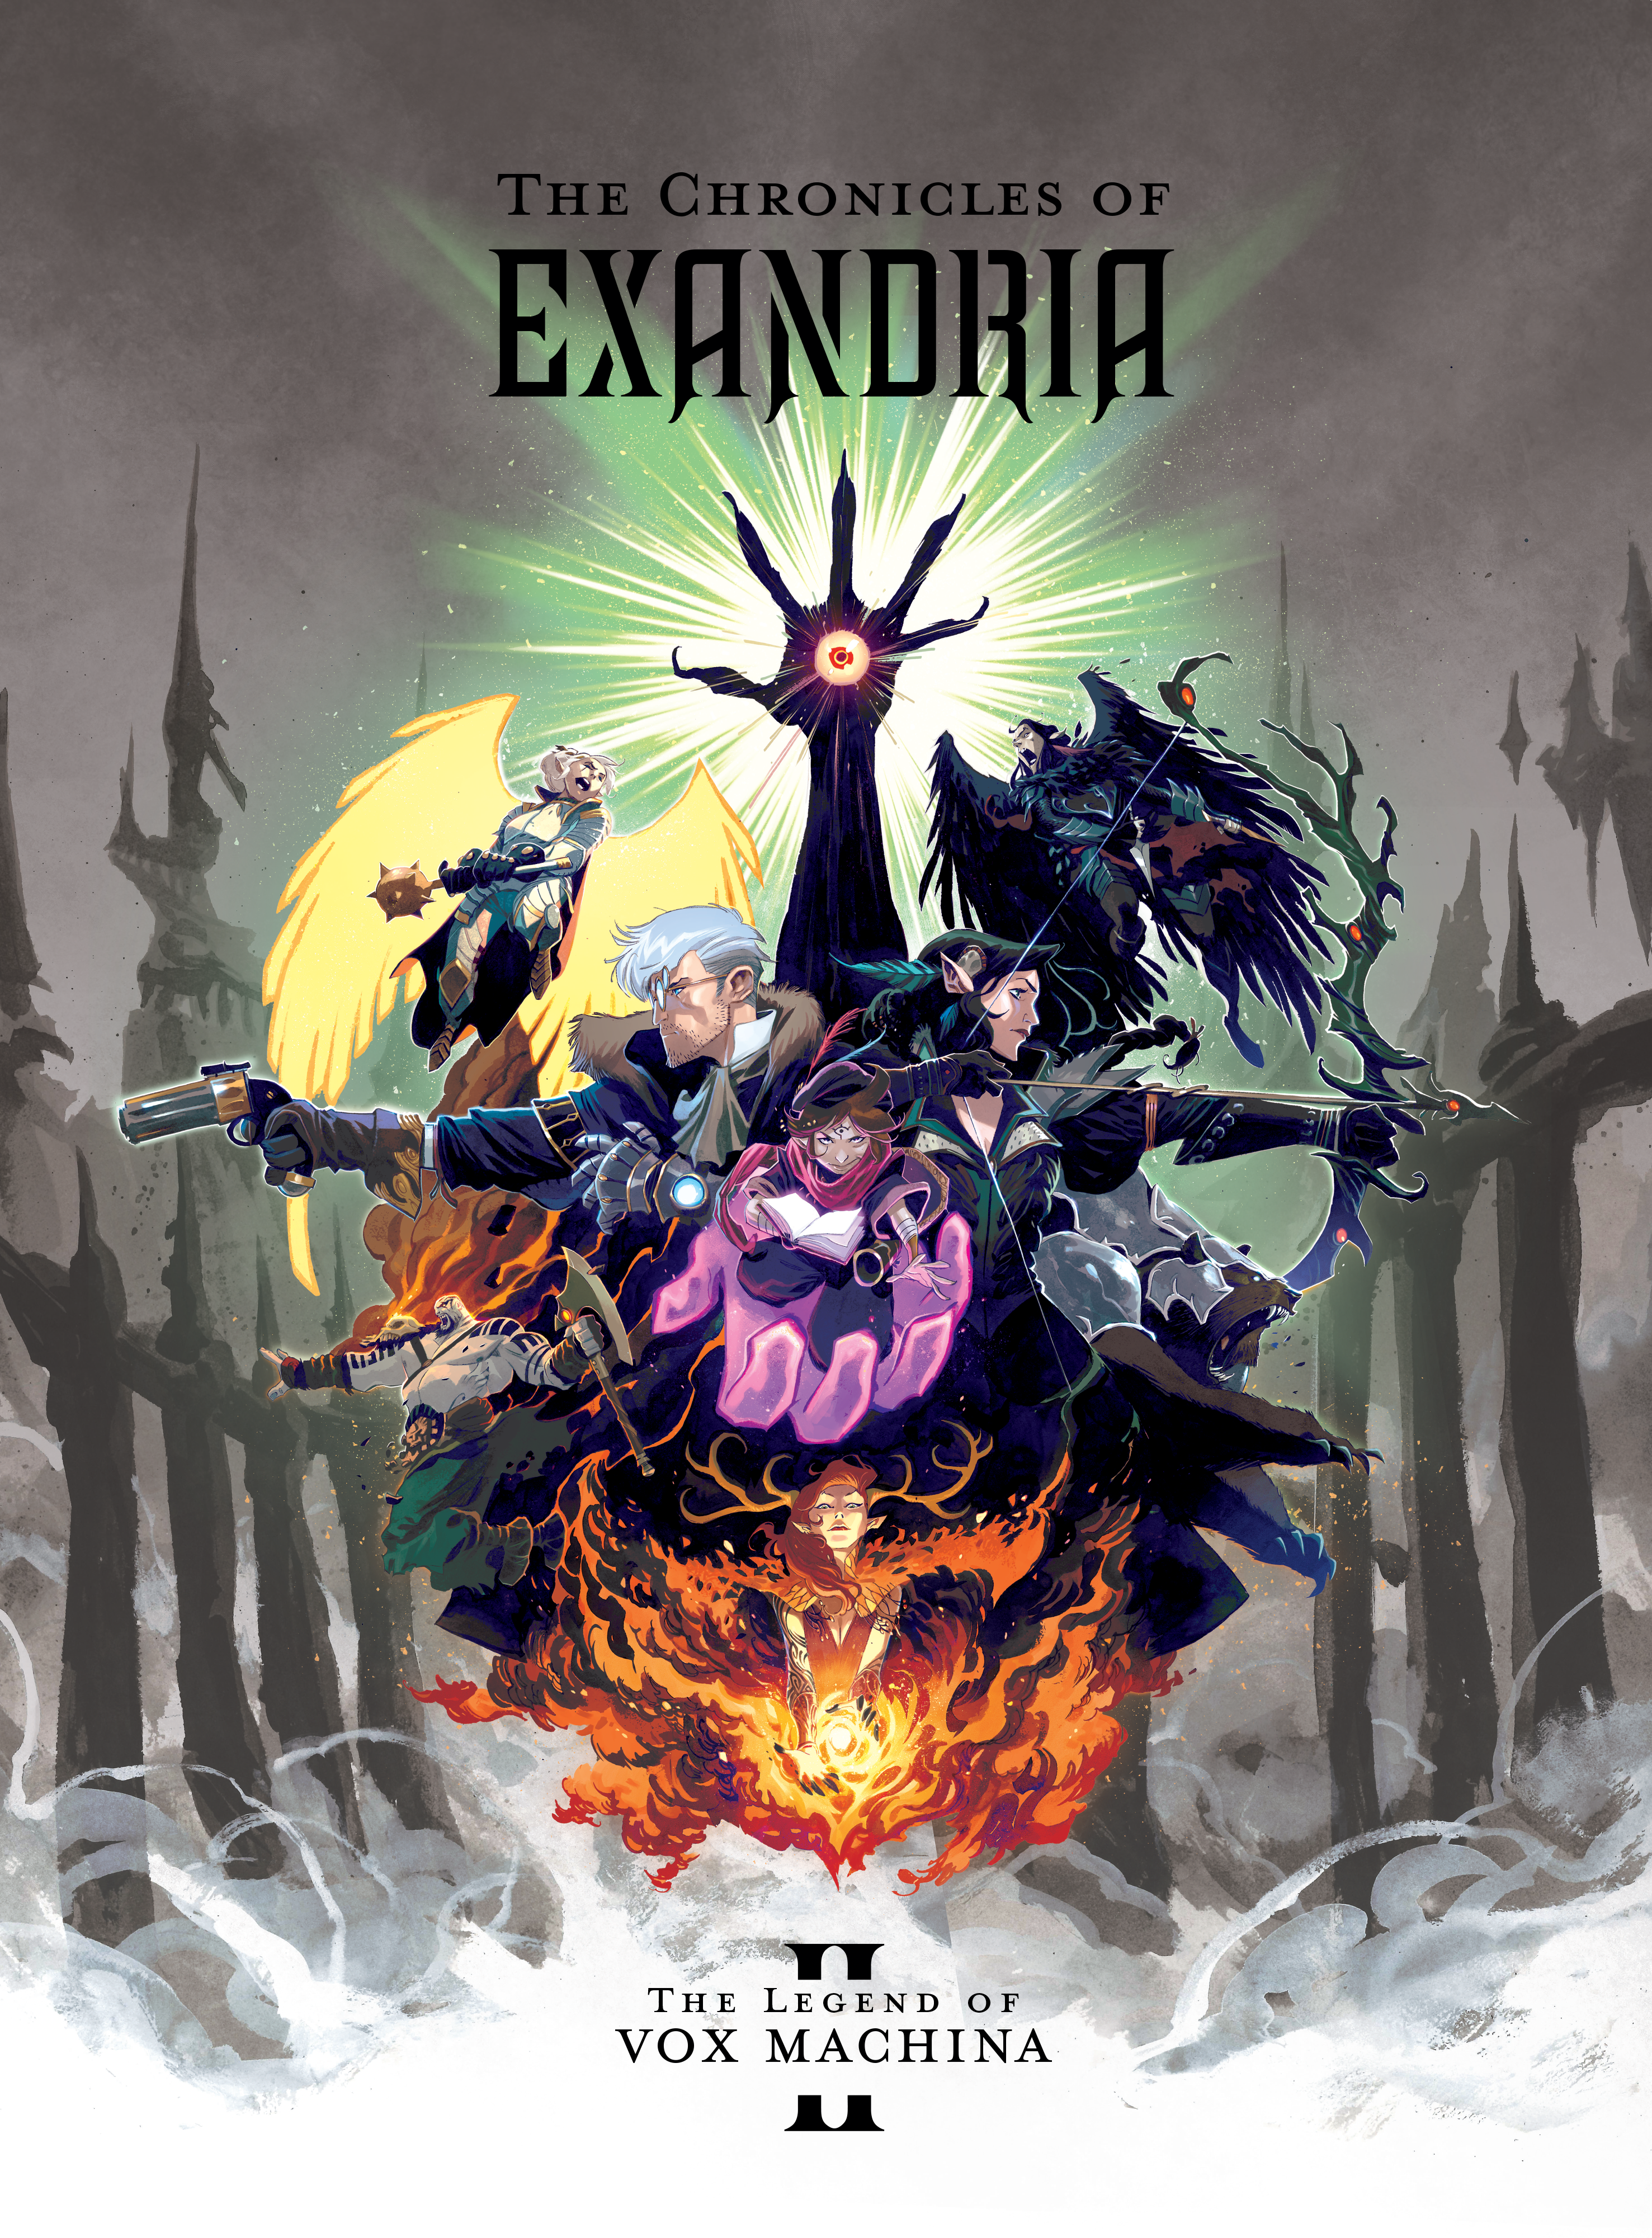 The Chronicles of Exandria